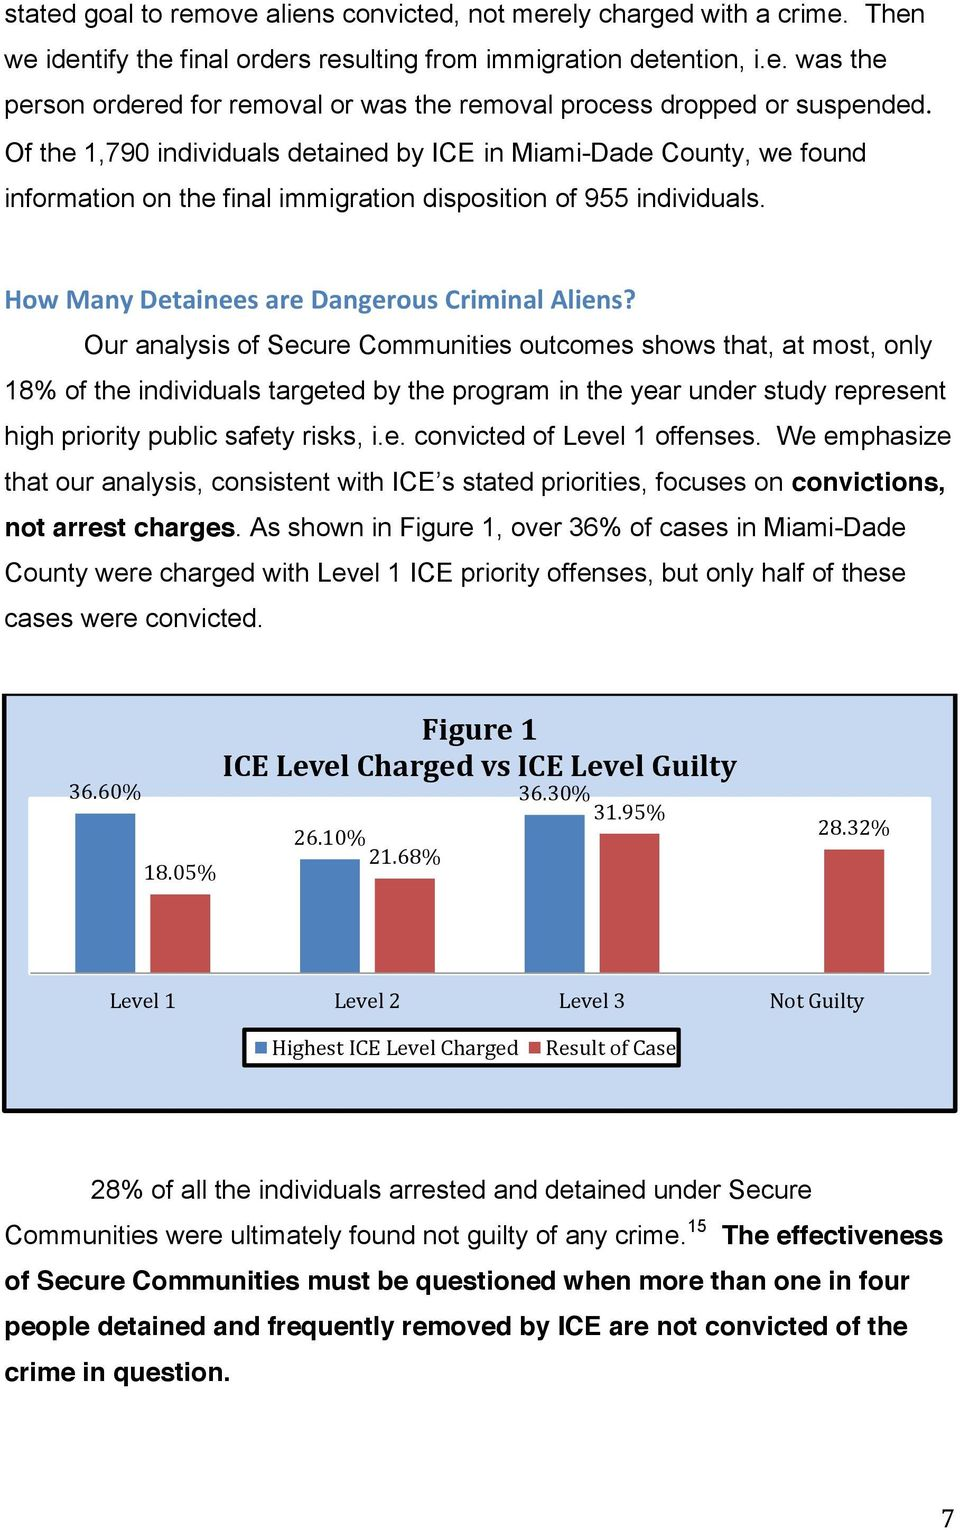 Our analysis of Secure Communities outcomes shows that, at most, only 18% of the individuals targeted by the program in the year under study represent high priority public safety risks, i.e. convicted of Level 1 offenses.